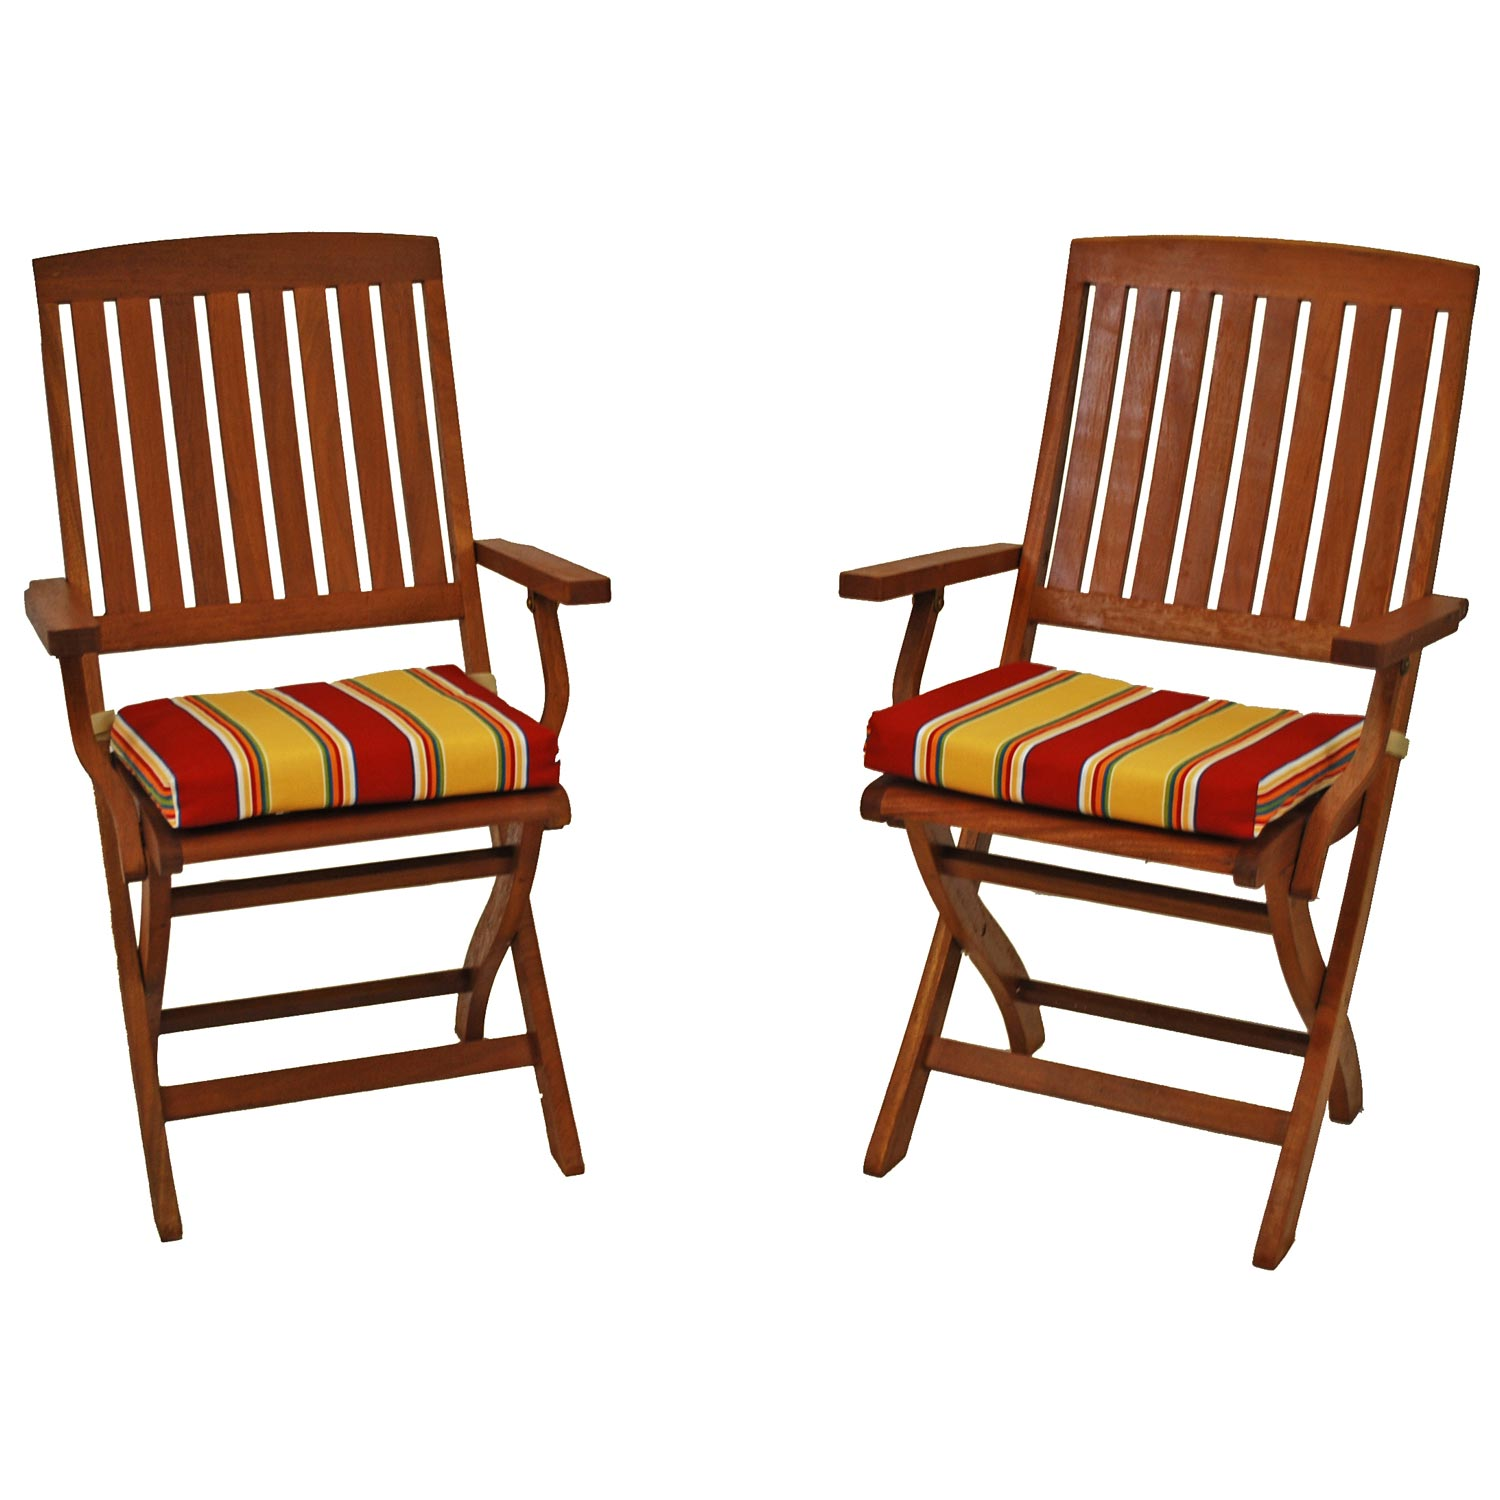 Fabric Folding Chairs Outdoor Folding Chair Cushion Patterned Fabric Set Of 2